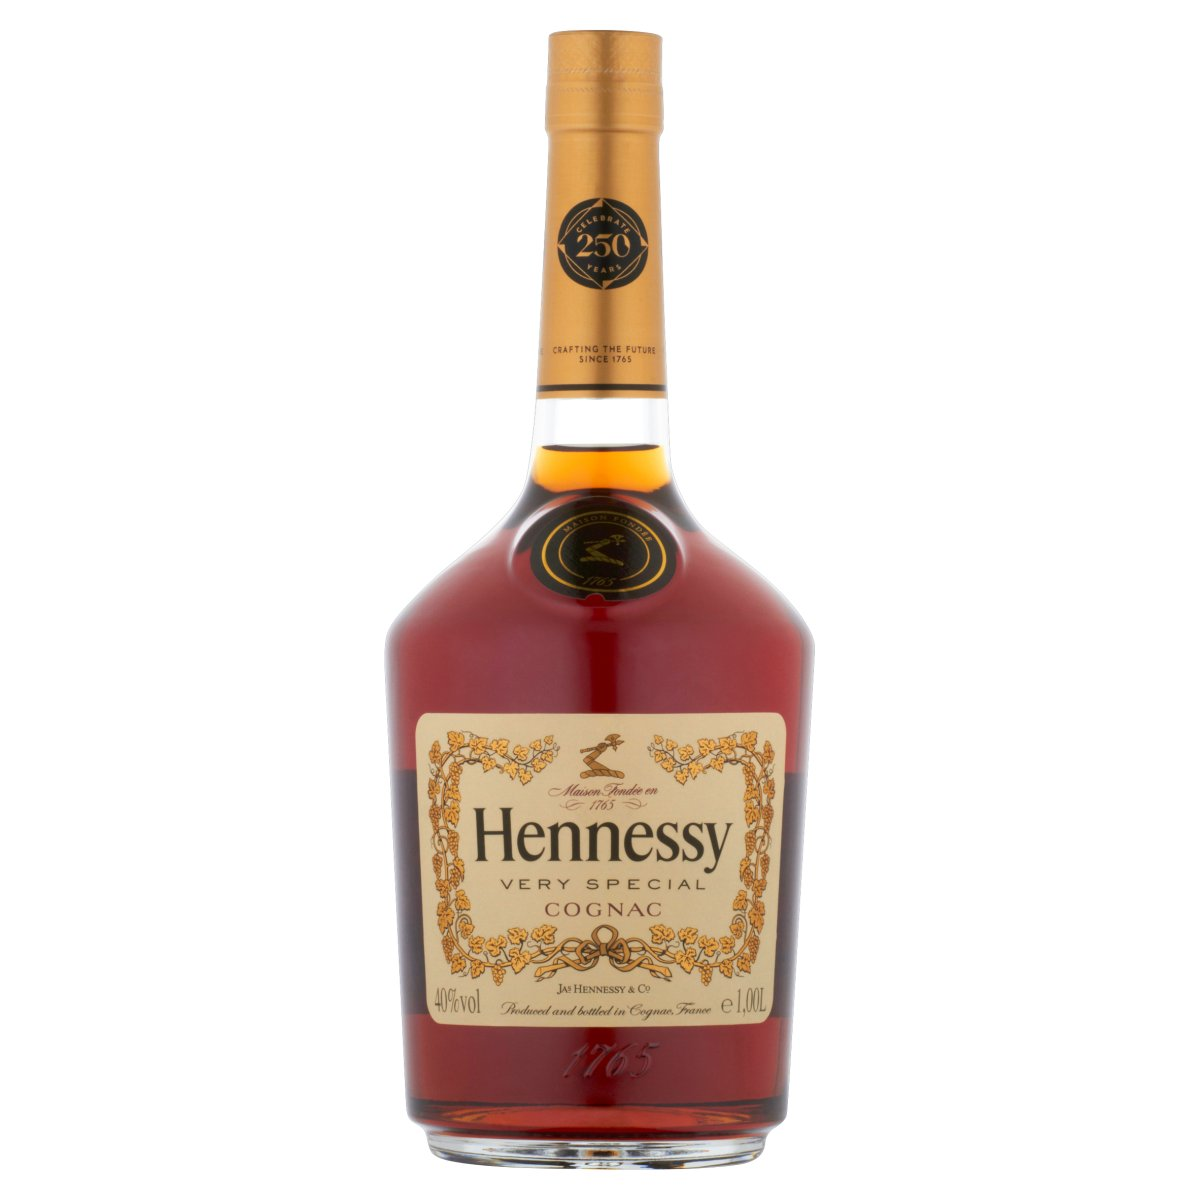 hennessay cognac In 1895, maurice hennessy, the great grand son of the founder richard  hennessy, was the first to systematically classify cognacs inspired by a  decorative star.